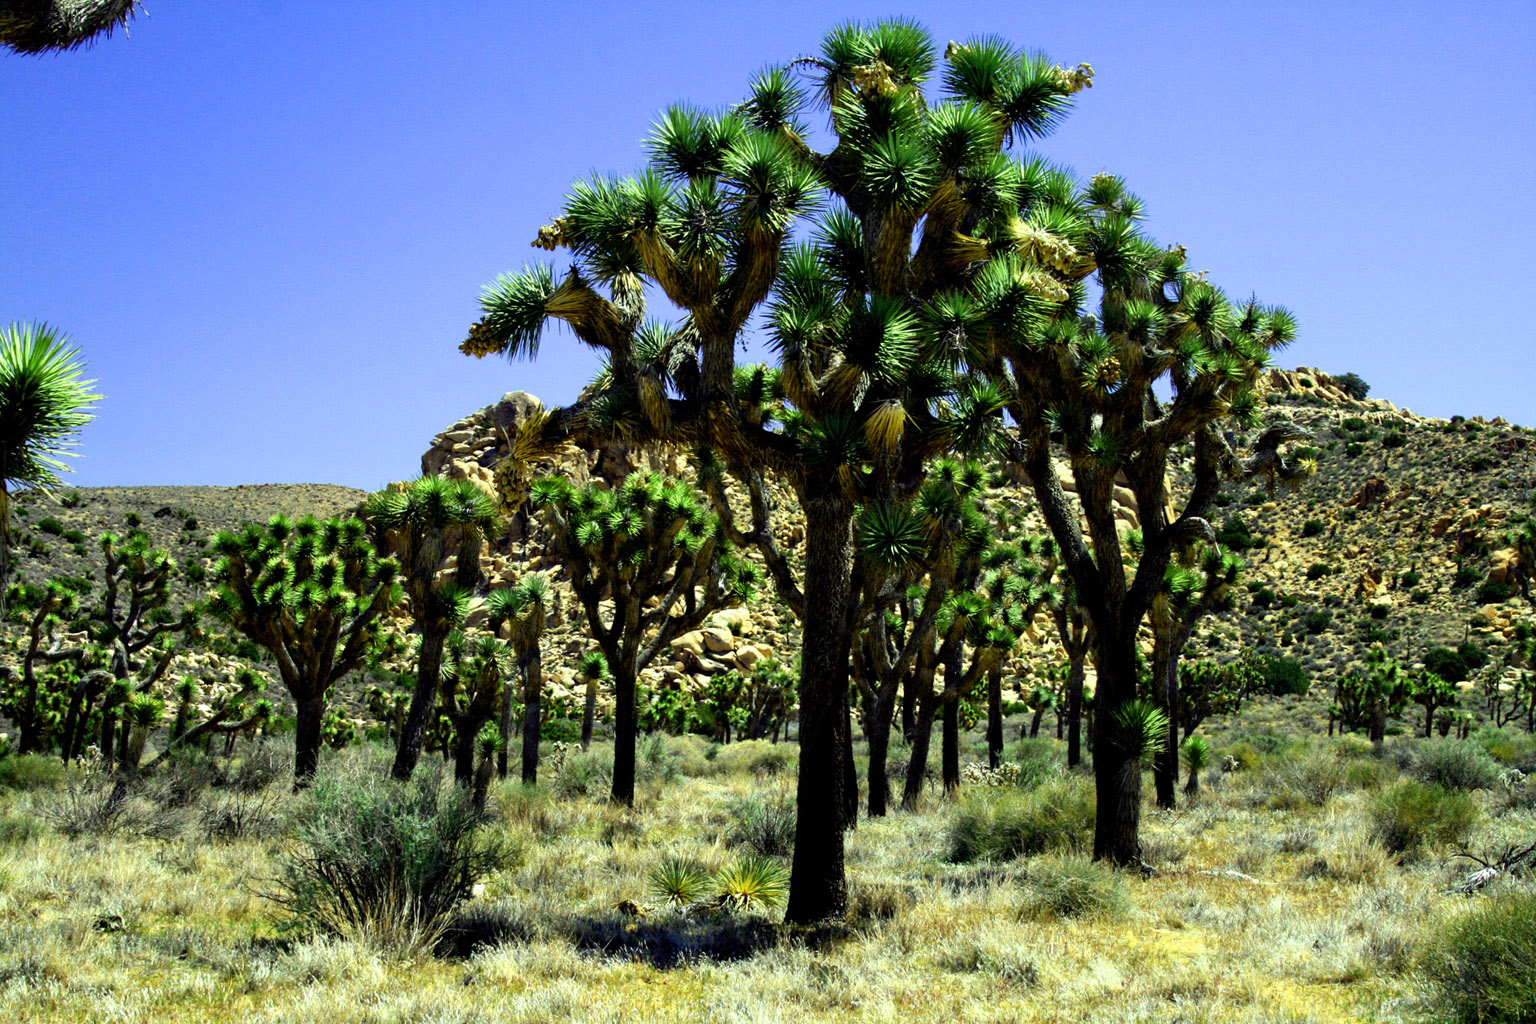 When you see many Joshua Trees...